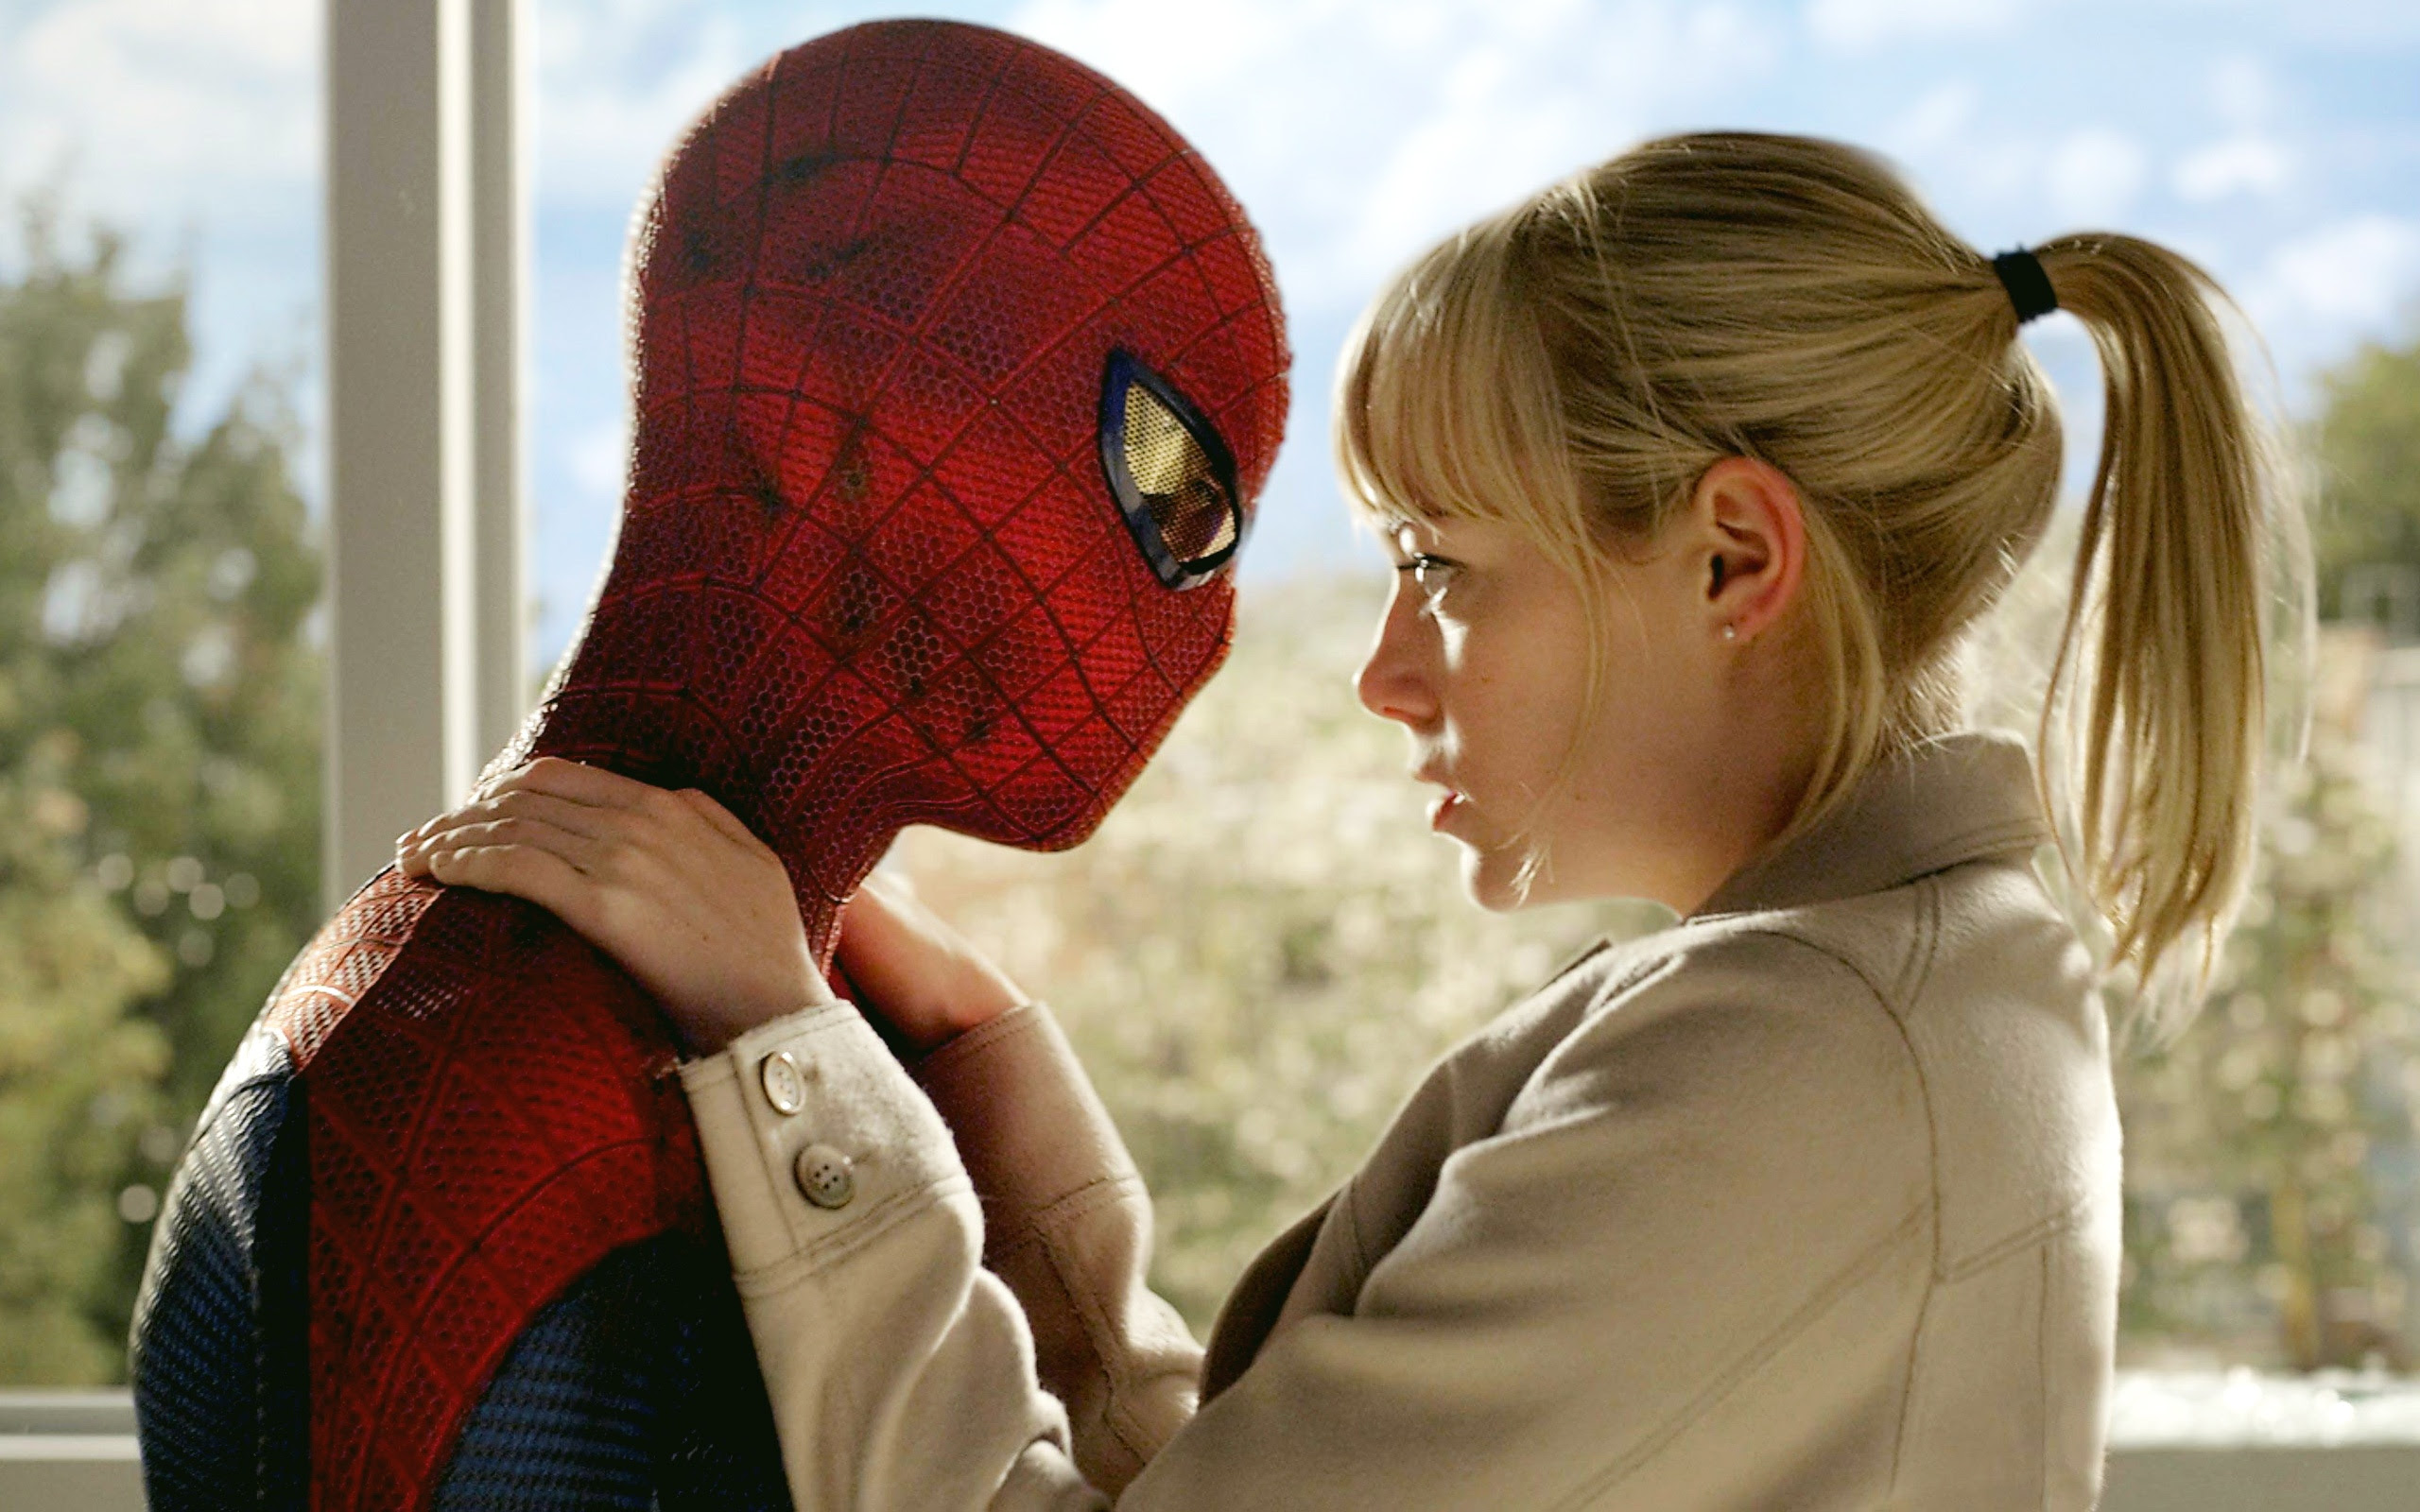 Spider Man And Gwen Stacy Wallpapers In Jpg Format For Free Download